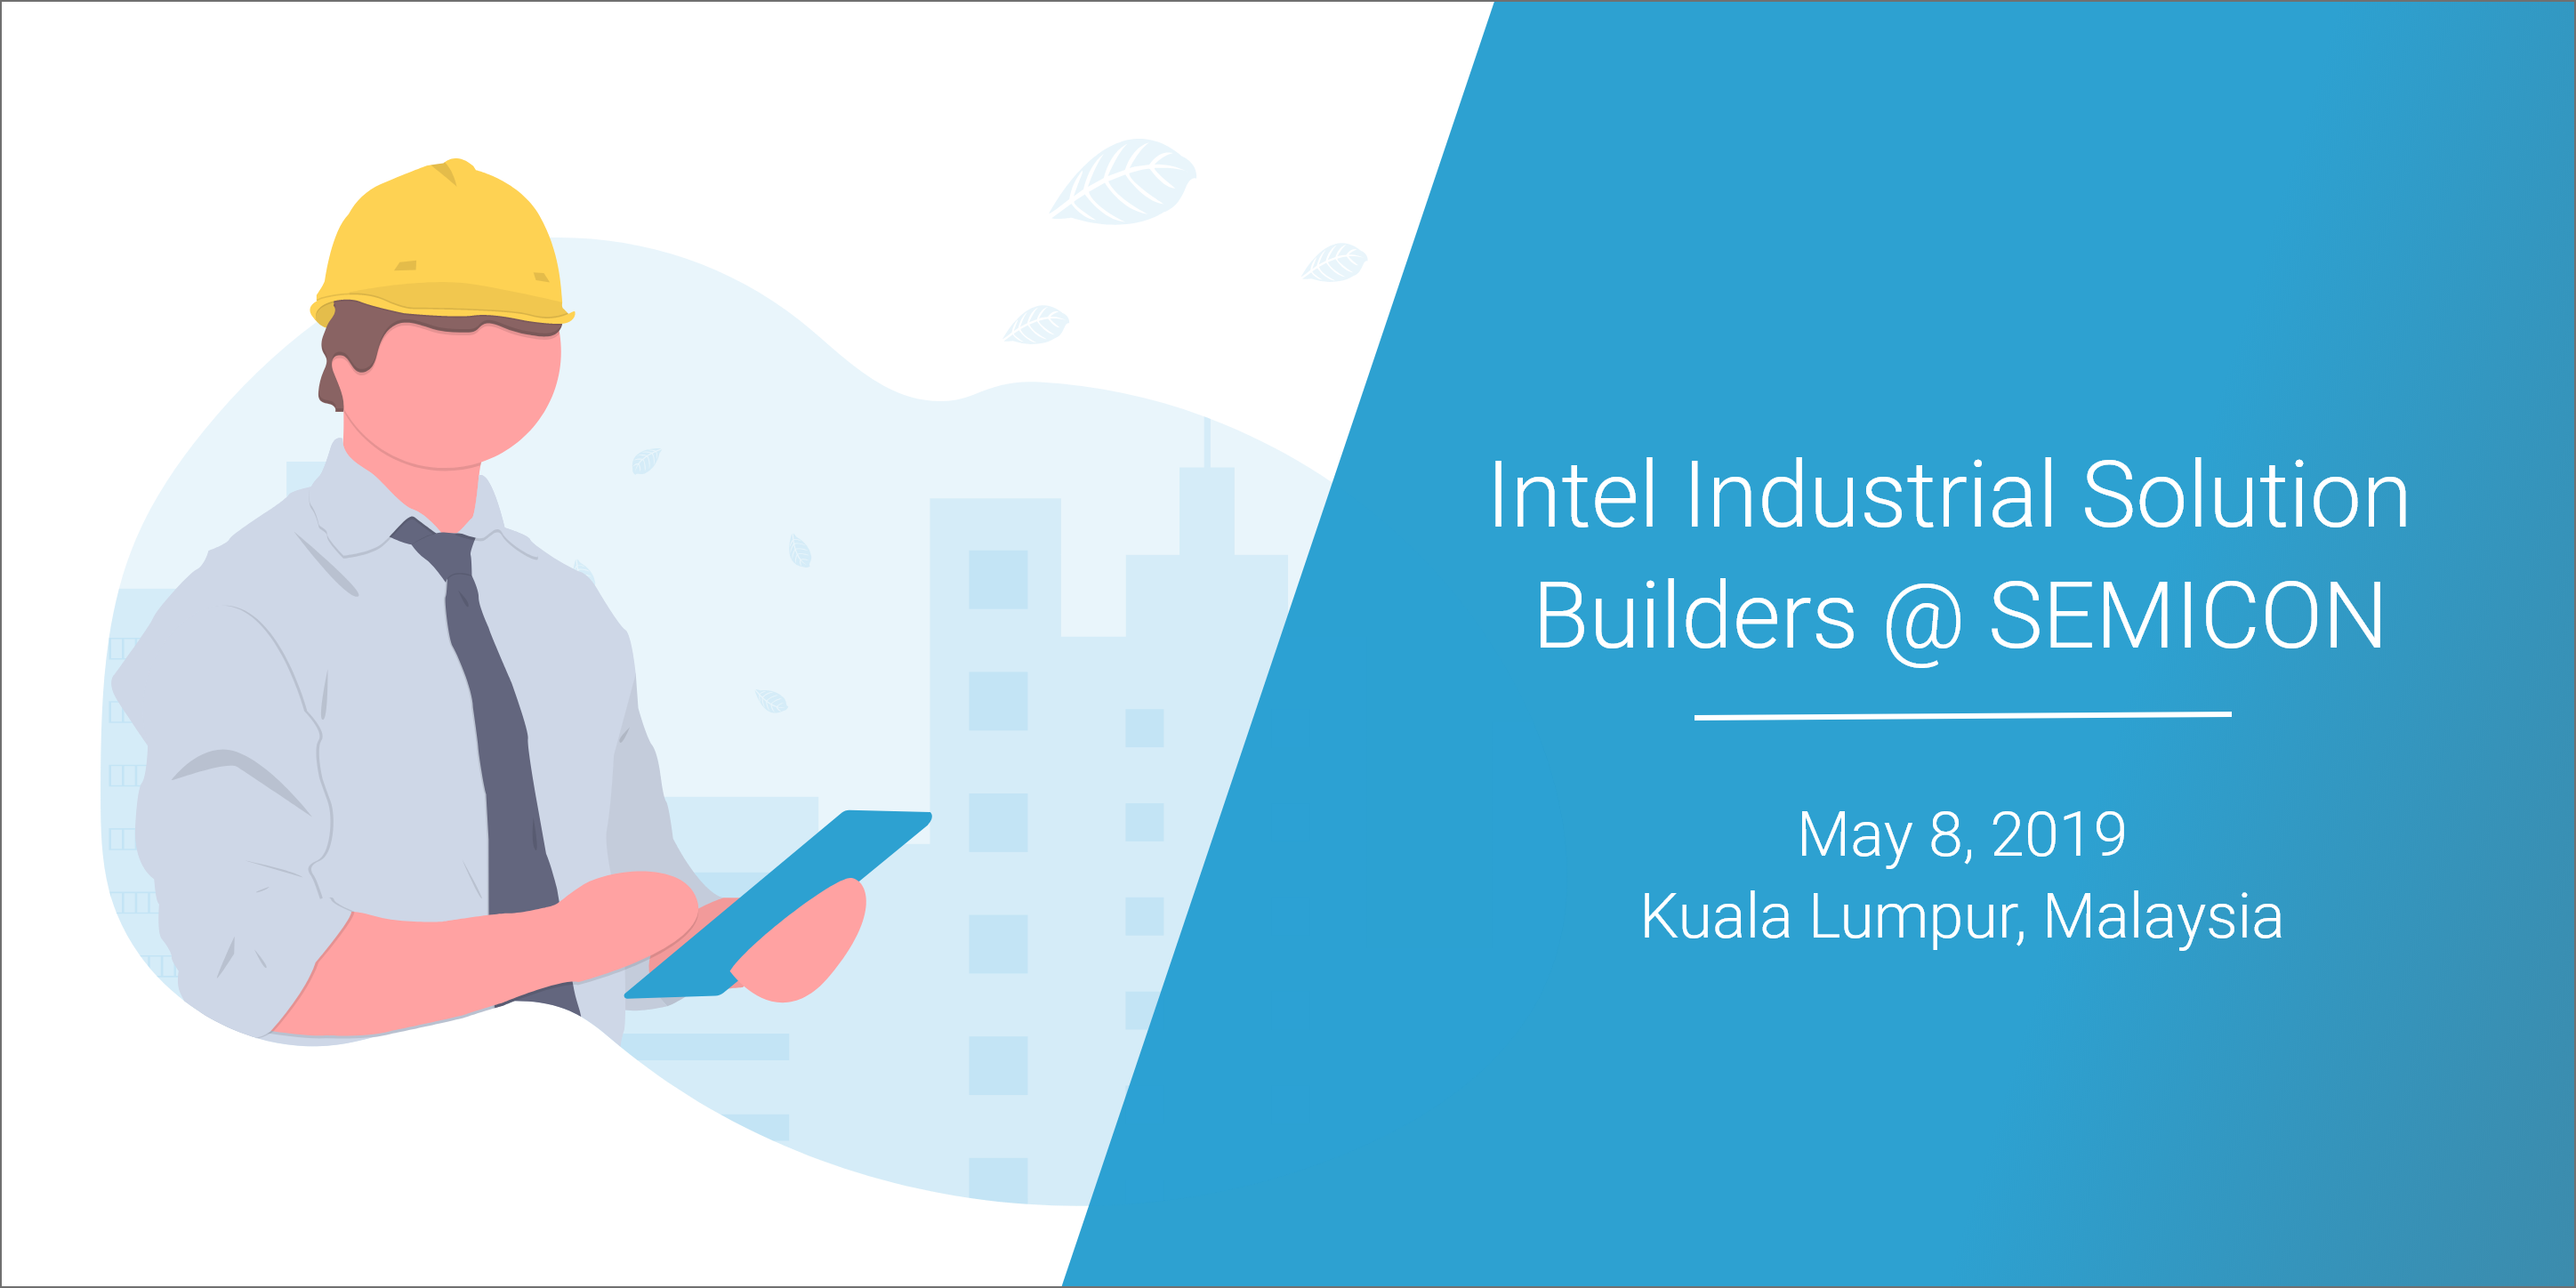 Don't Miss: Intel Industrial Solution Builders @ SEMICON